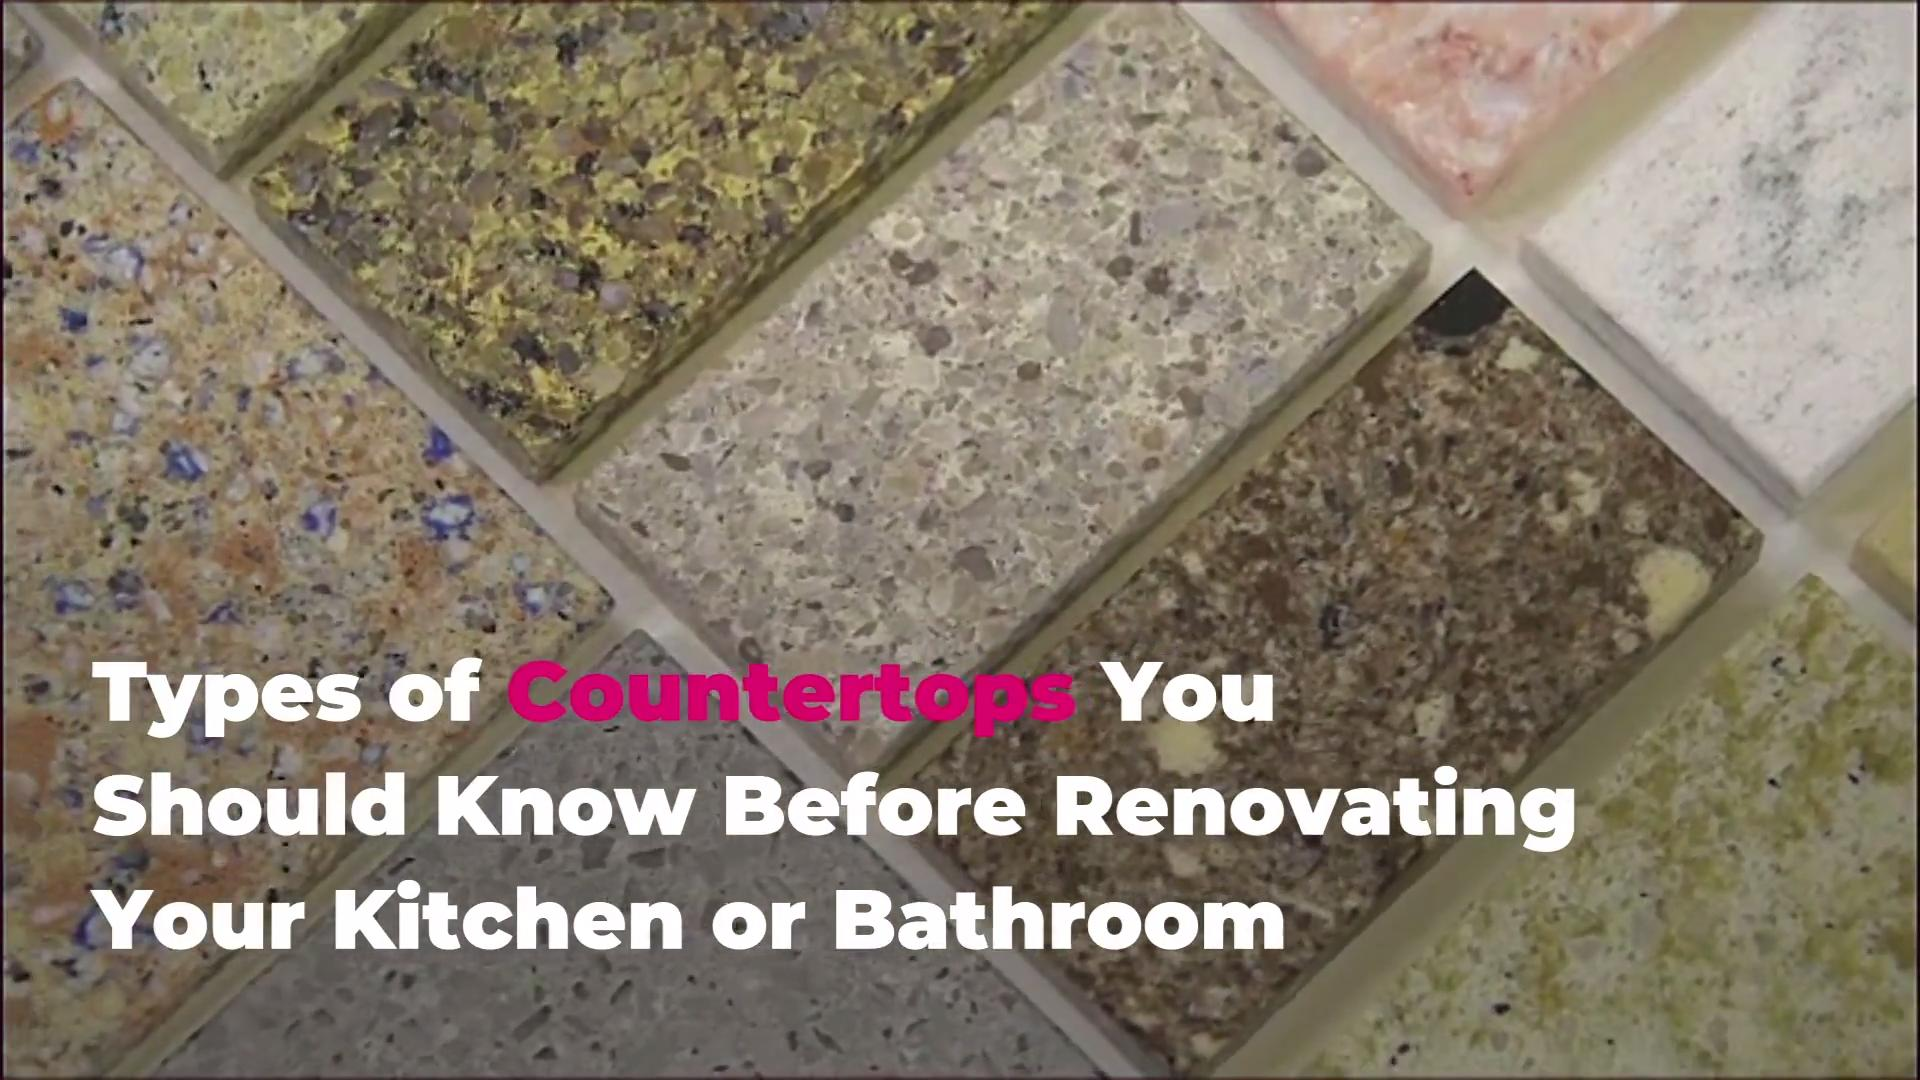 10 Types of Countertops to Know Before Your Renovation | Real Simple